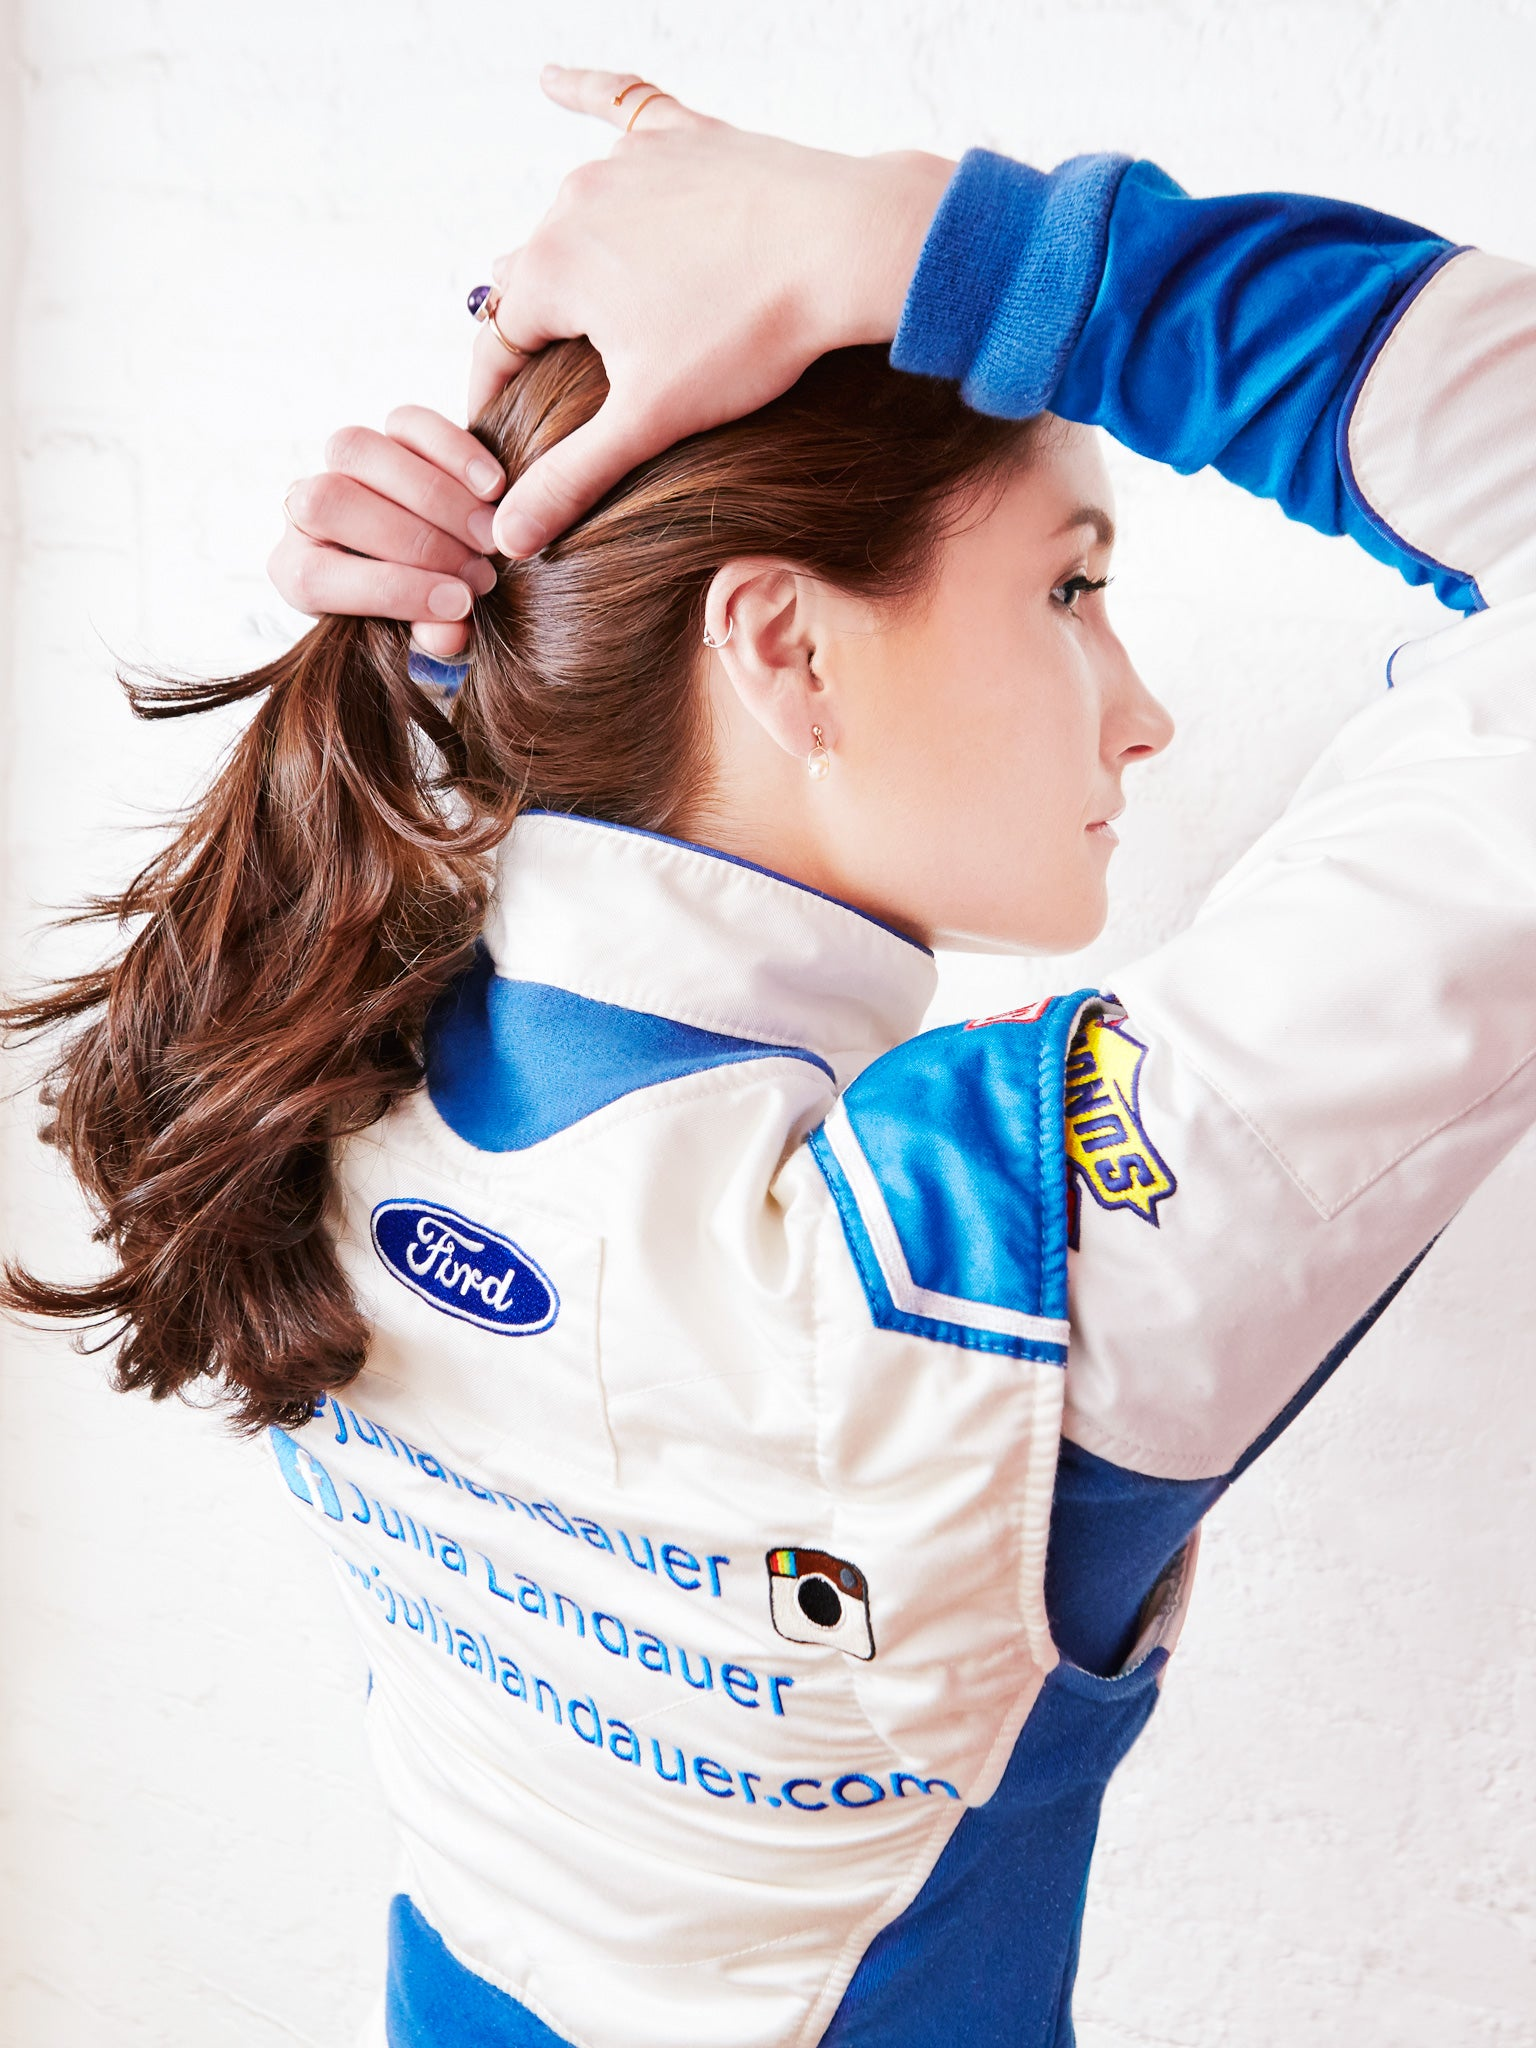 Julia landauer in racing uniform